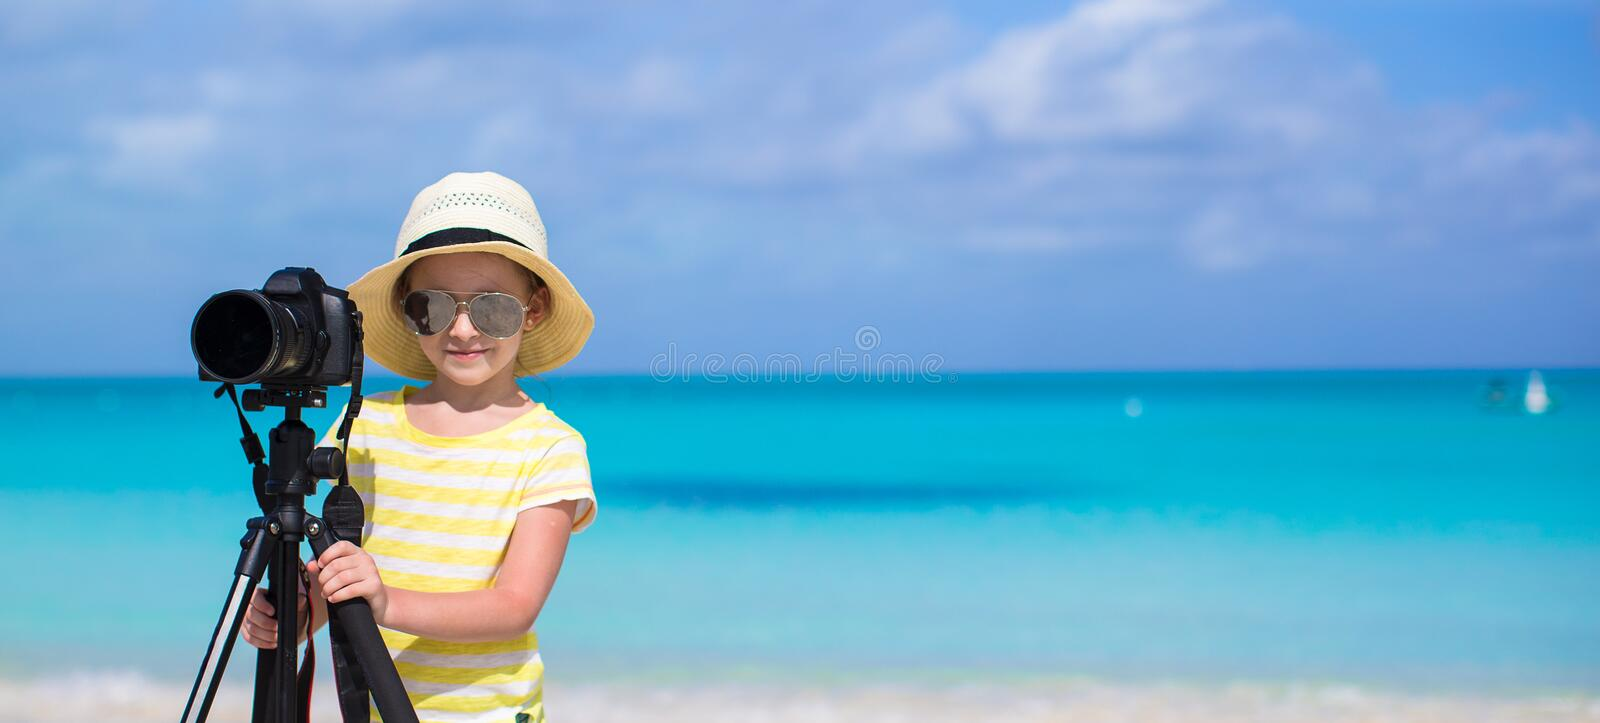 Little girl shooting with camera on tripod during royalty free stock photography